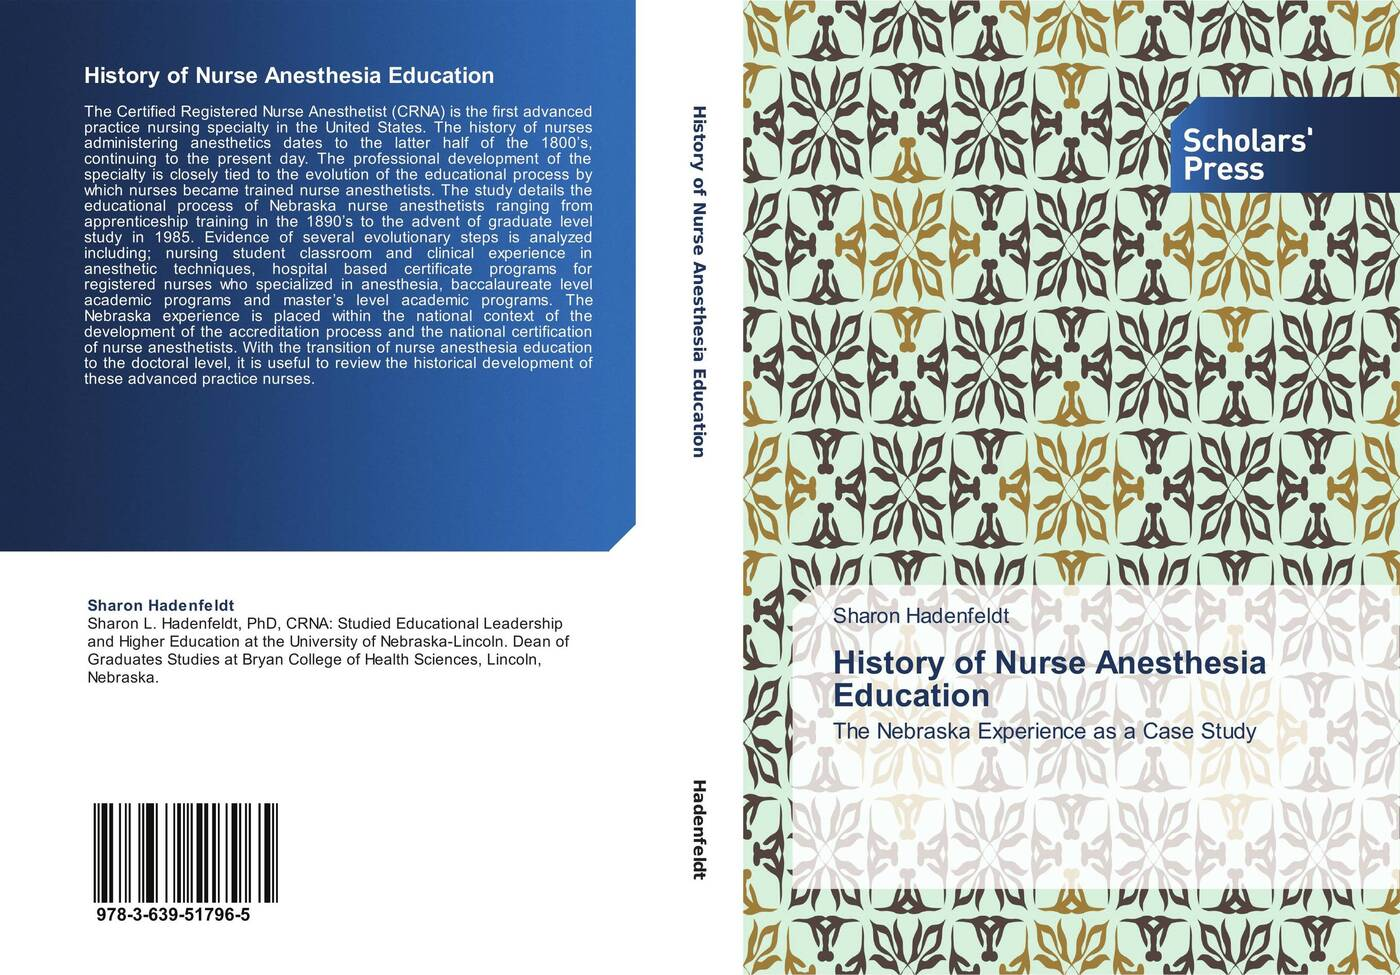 Sharon Hadenfeldt History of Nurse Anesthesia Education brown marie annette the advanced practice registered nurse as a prescriber